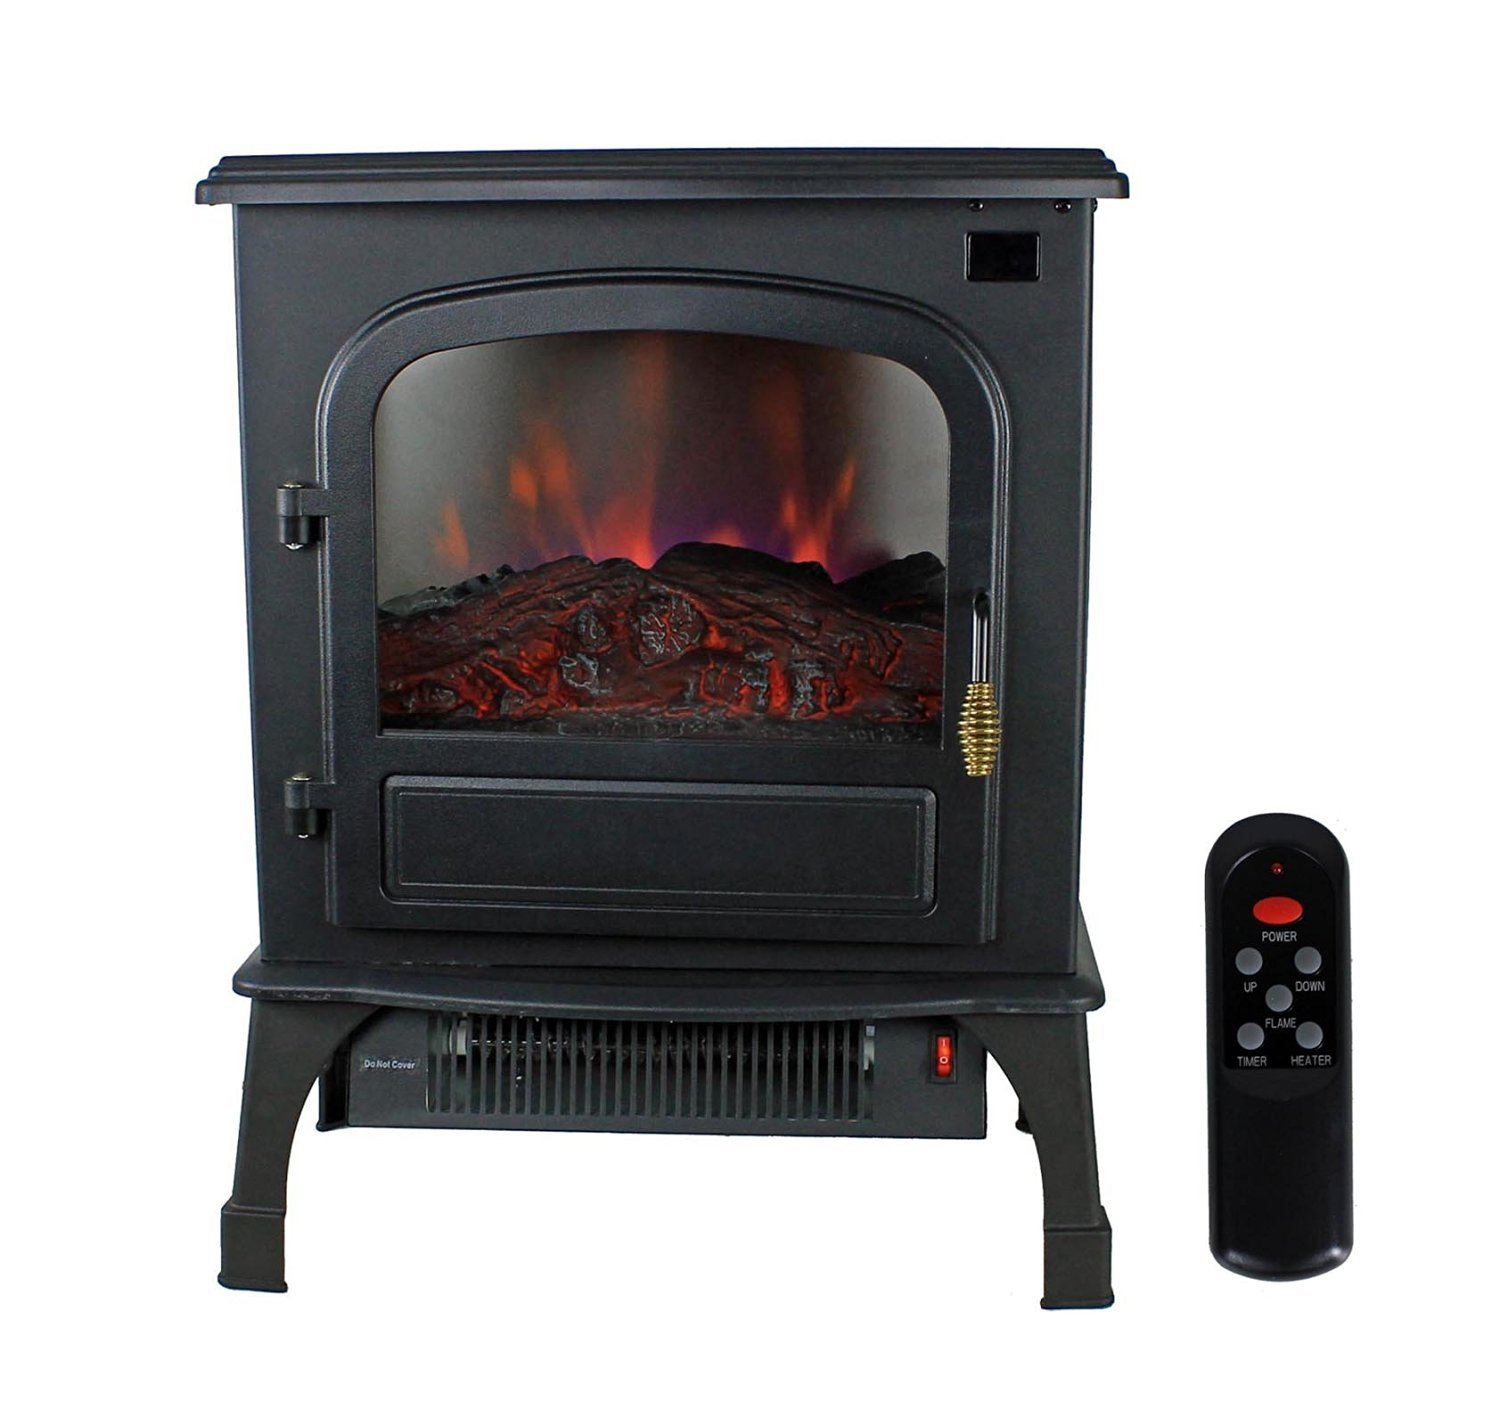 Indoor Electric Stove Heater With Infrared Technology-Beautiful Black Finish With LED Simulated Flames Three Sided Glass- Energy Efficient Hearing To 1000 Sq Feet Rooms- 3 Operating Modes With Remote by Wrapped Element Infrared